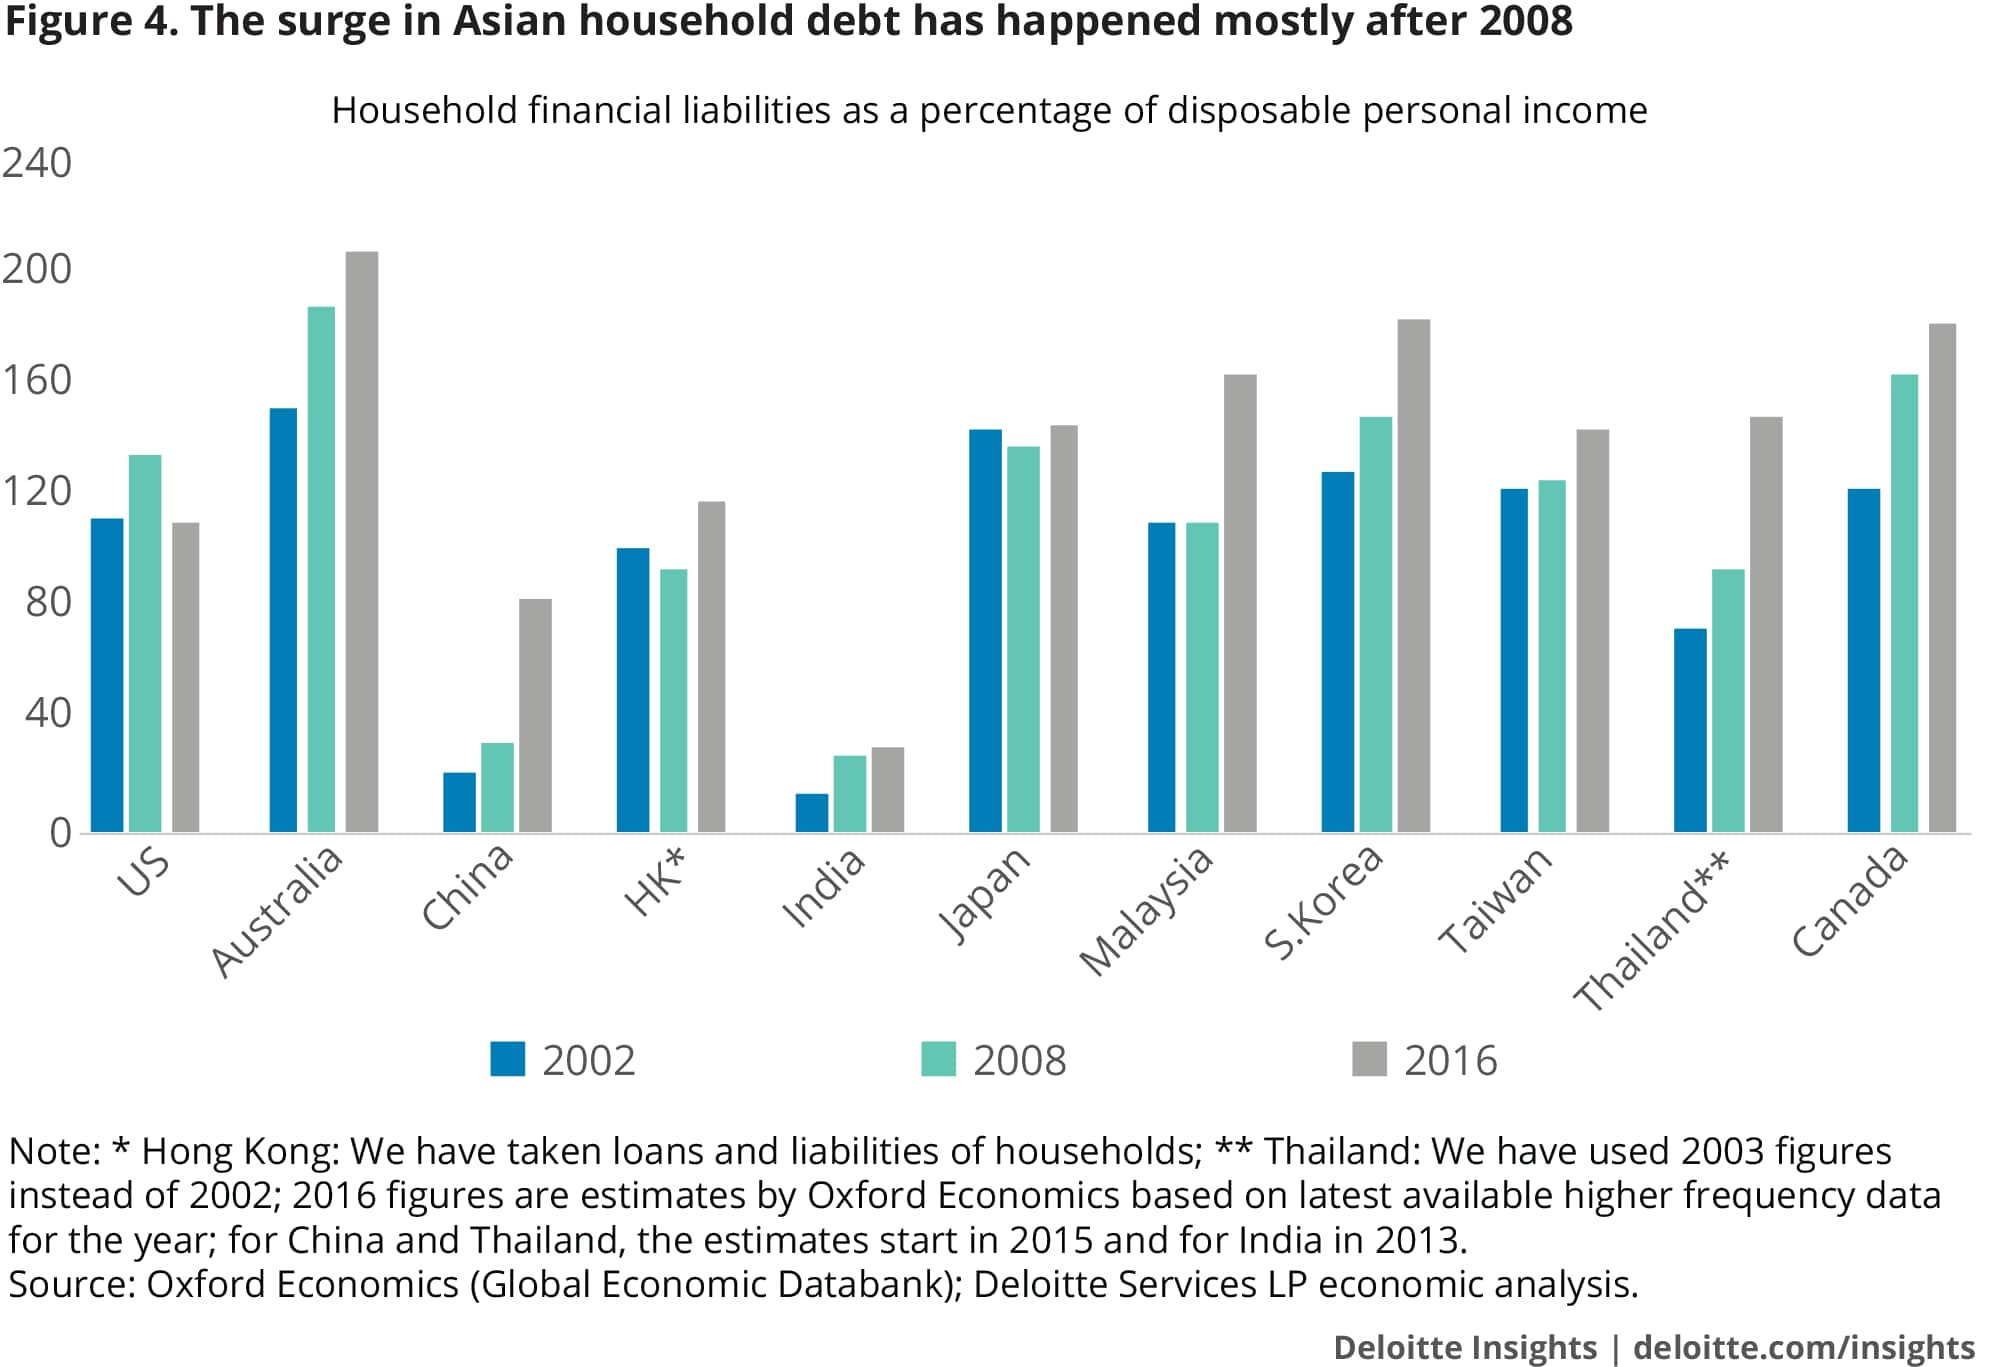 The surge in Asian household debt has happened mostly after 2008